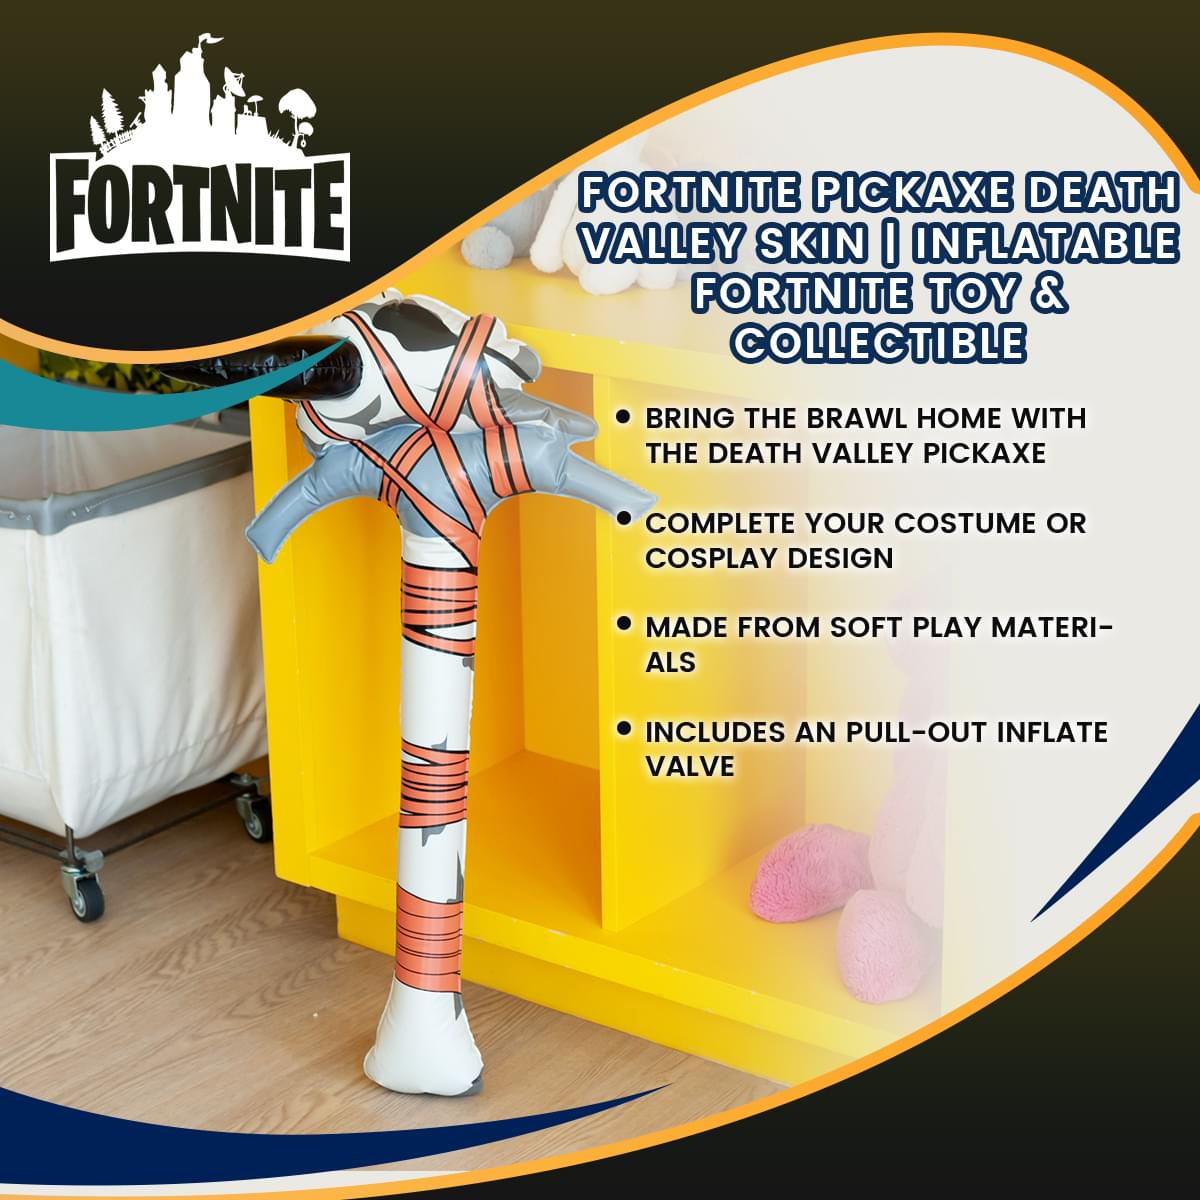 Fortnite Death Valley Skin Inflatable Pickaxe Costume Accessory